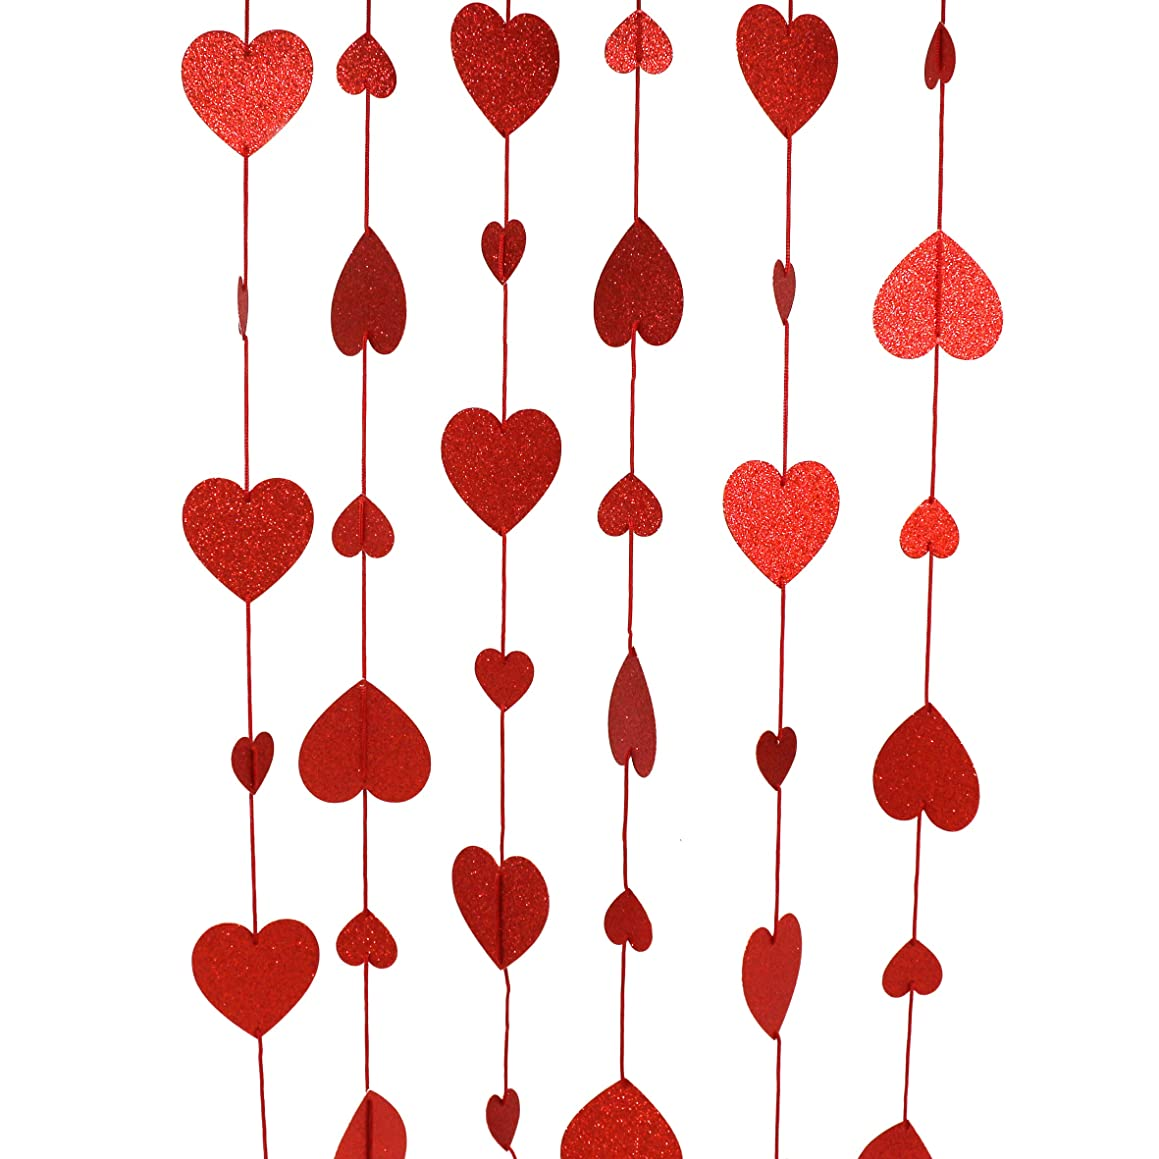 CVHOMEDECO. Golden Twinkle Glittered Paper Heart Shape String Garland Unique Hanging Bunting Banner for Wedding Birthday Party Festival Home Background Decoration, 5.5 feet, Pack of 2 PCS (Red)